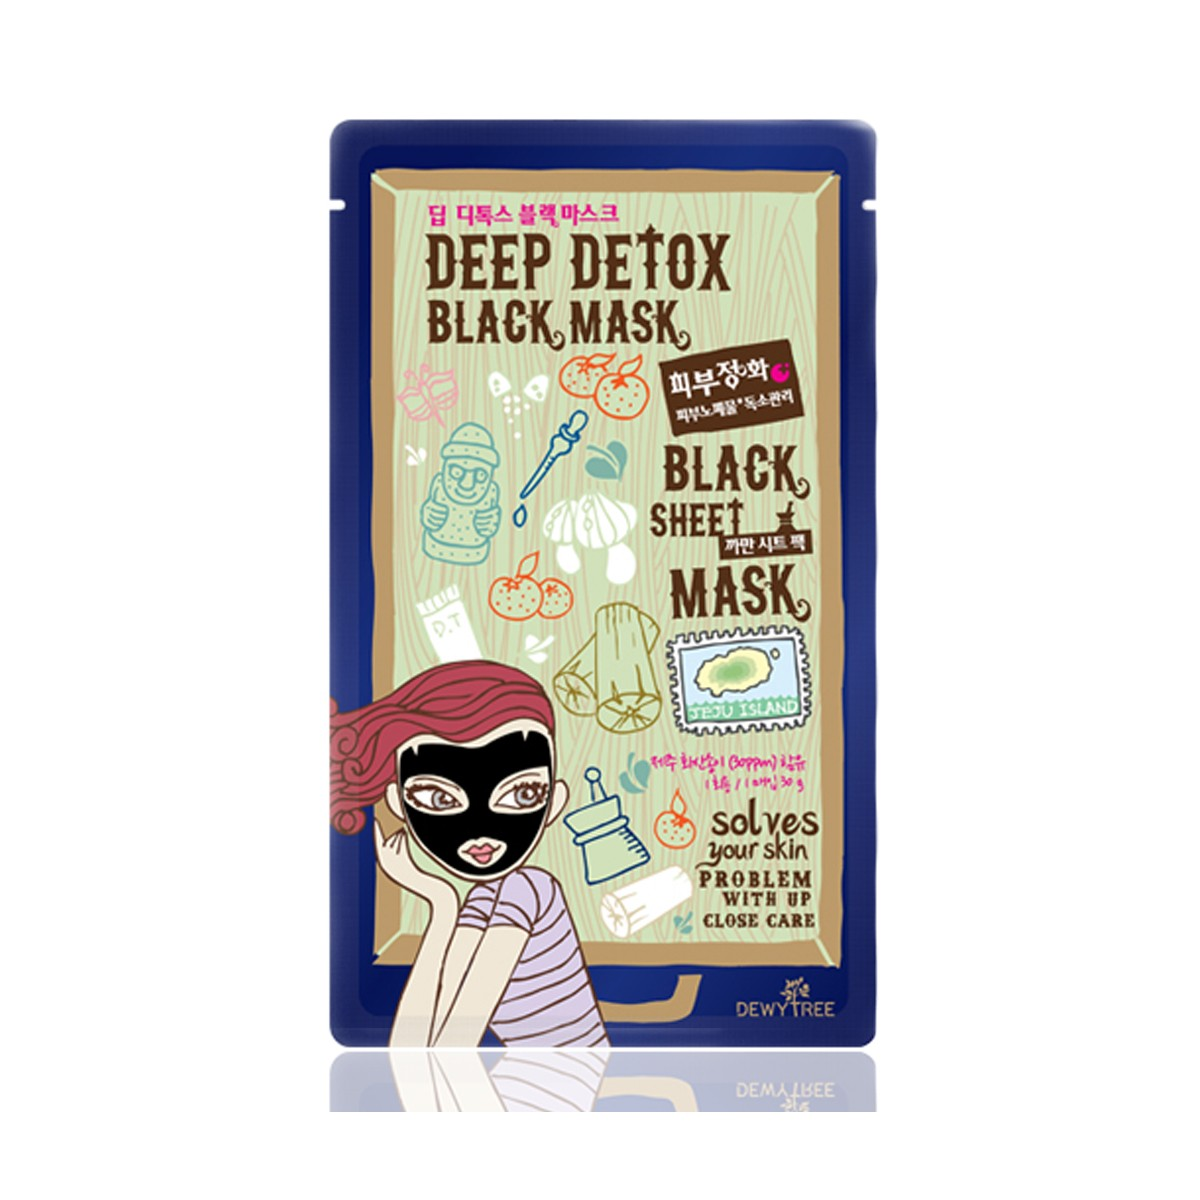 mascarilla-negra-peel-off-30-gr-deep-detox-black-mask-dewytree